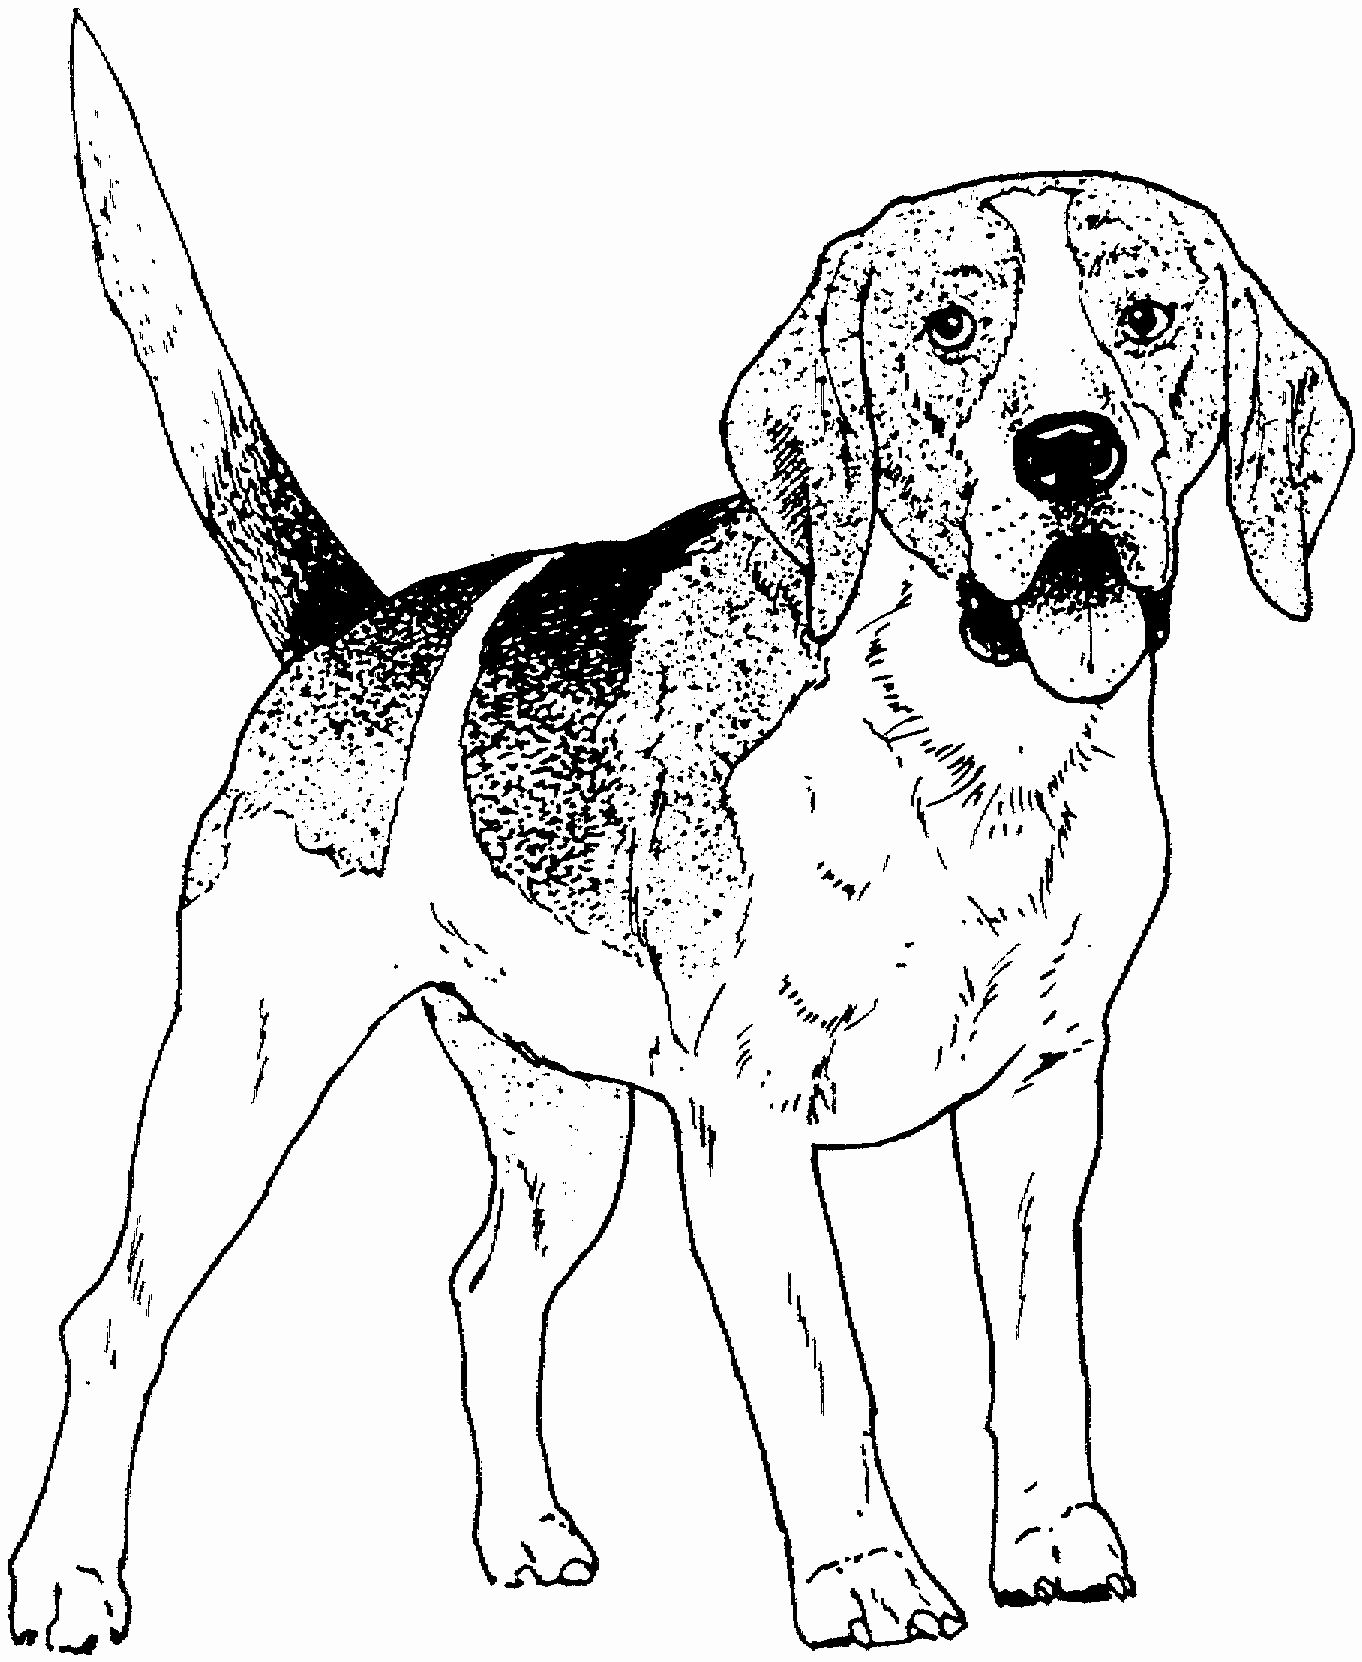 Dog Coloring Pages Printable Lovely Dog Breed Coloring Pages In 2020 Dog Coloring Page Puppy Coloring Pages Animal Coloring Pages